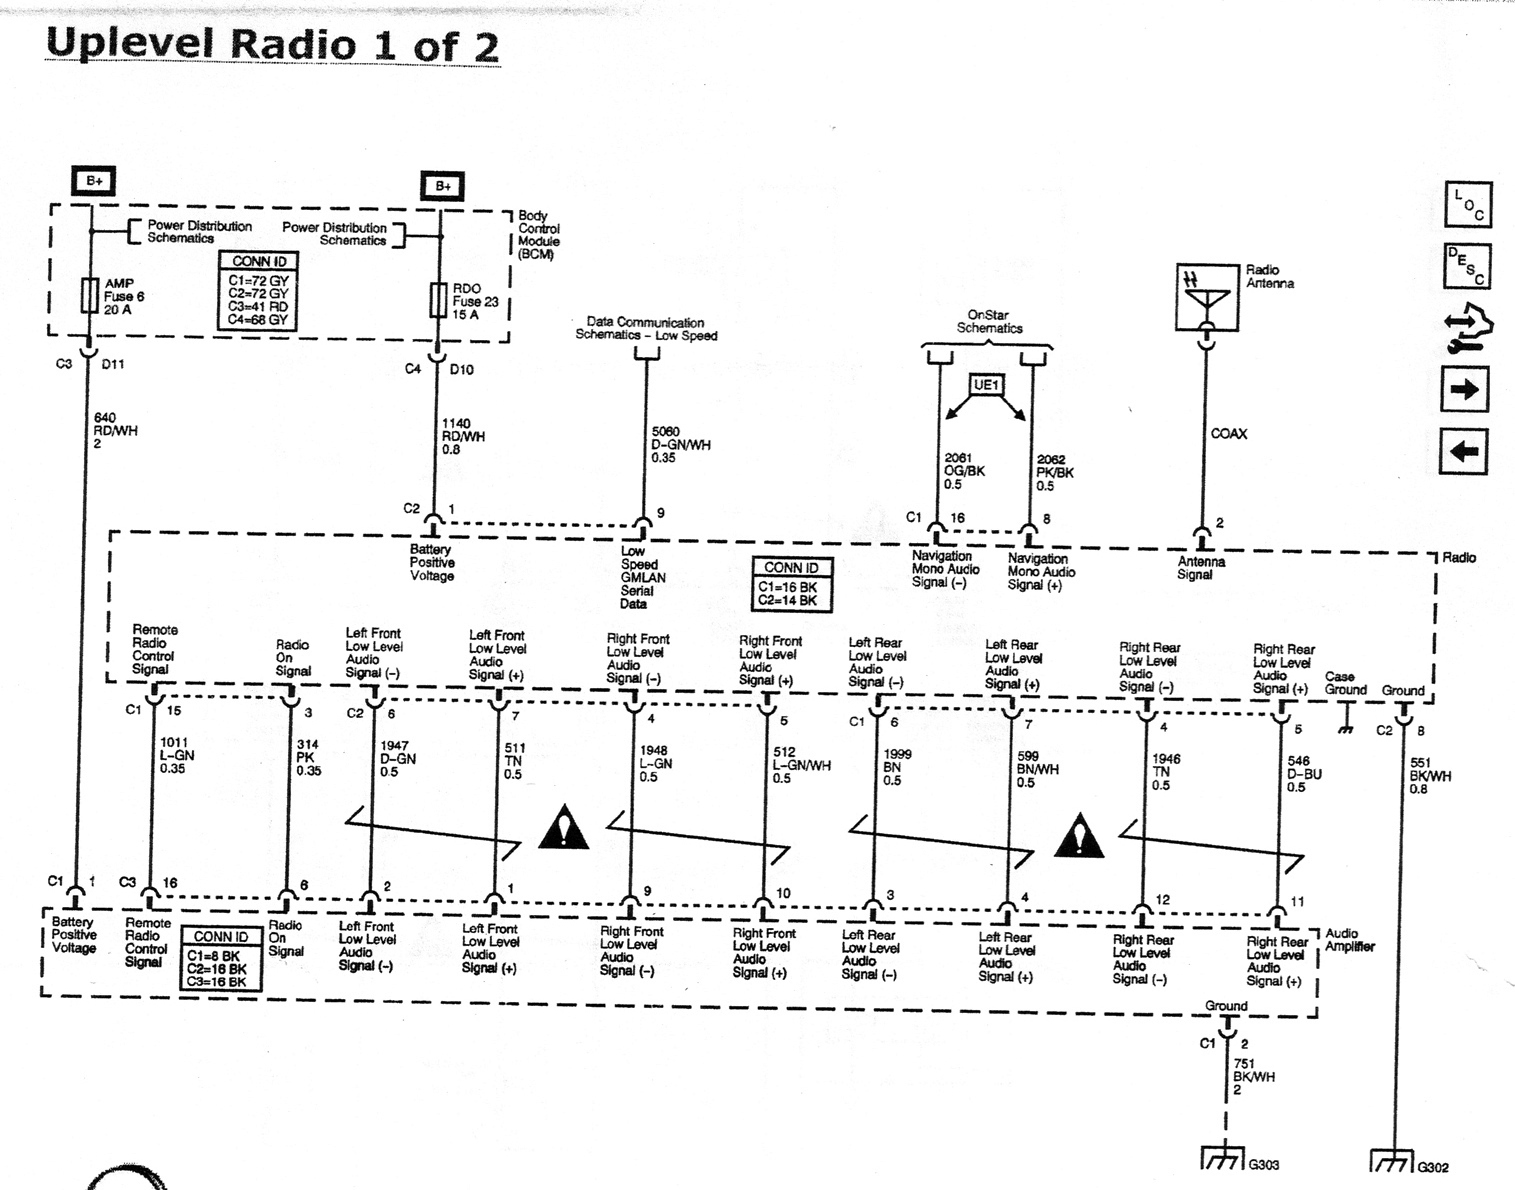 29801 monsoon amp speaker replacement monsoon_wiring_diagram_page_1 volkswagen monsoon wiring diagram wiring diagram simonand Monsoon Amplifier Specs at fashall.co